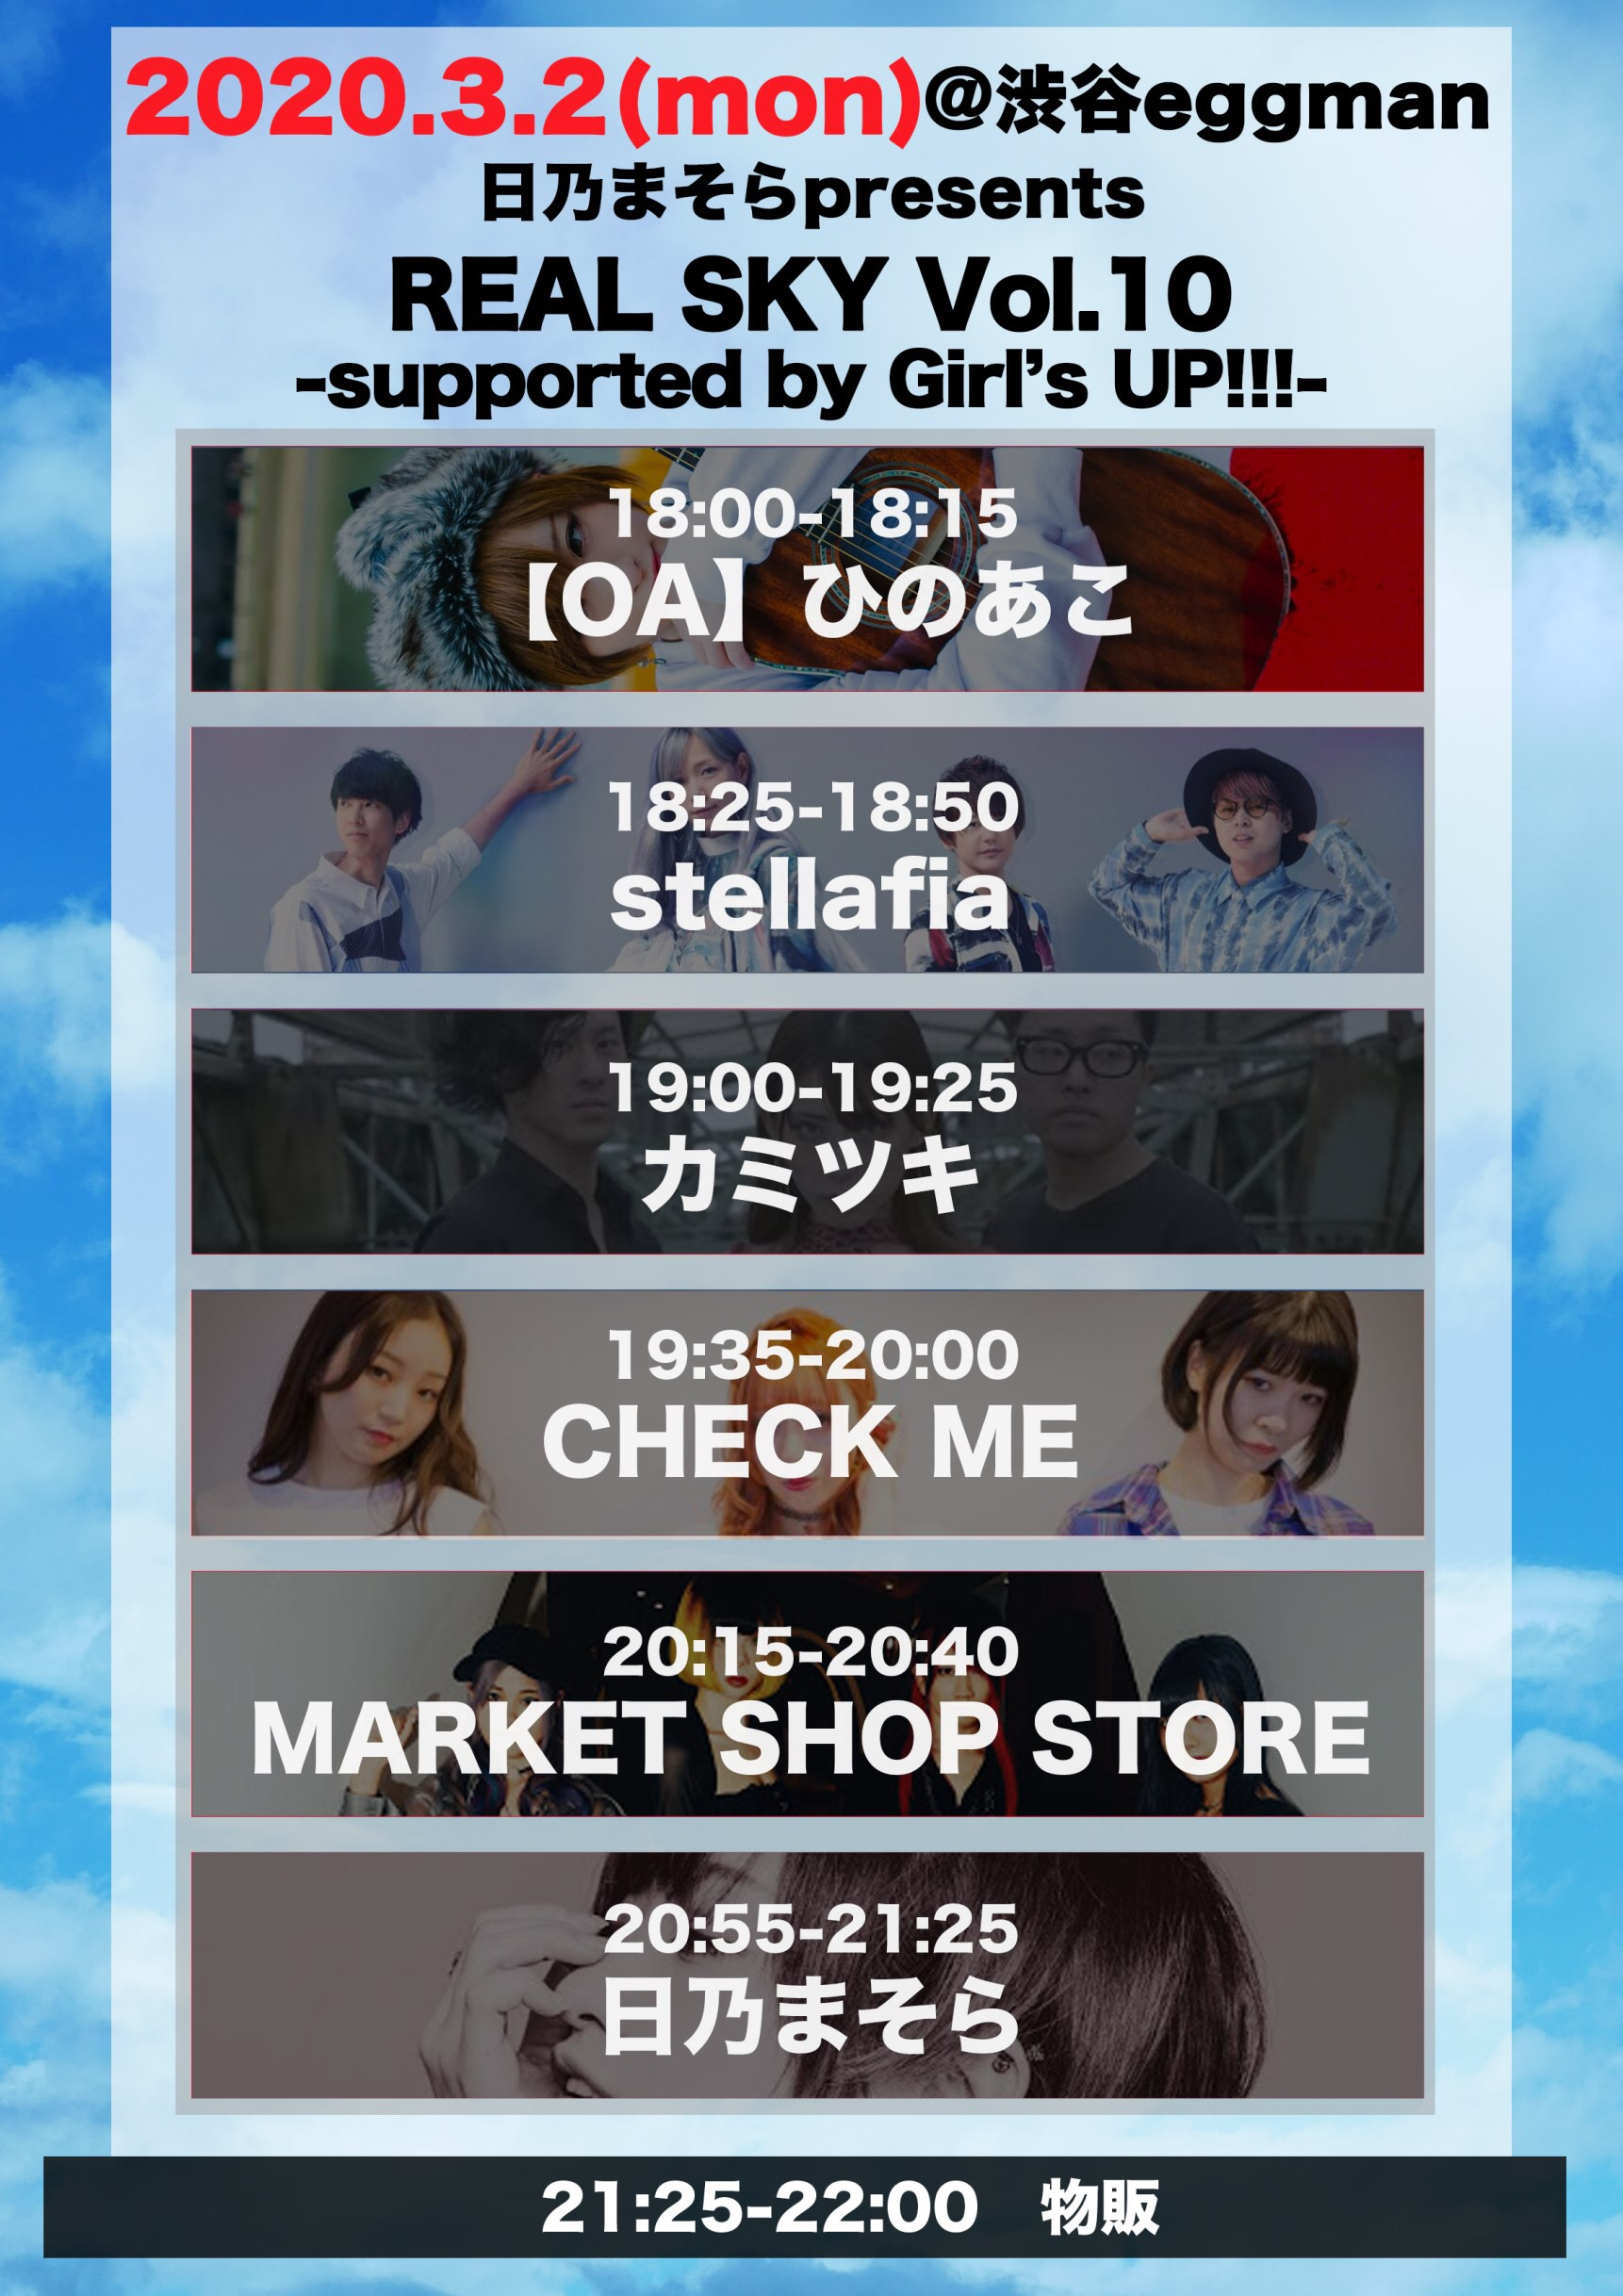 日乃まそら presents「REAL SKY Vol.10」 supported by Girl's UP!!!